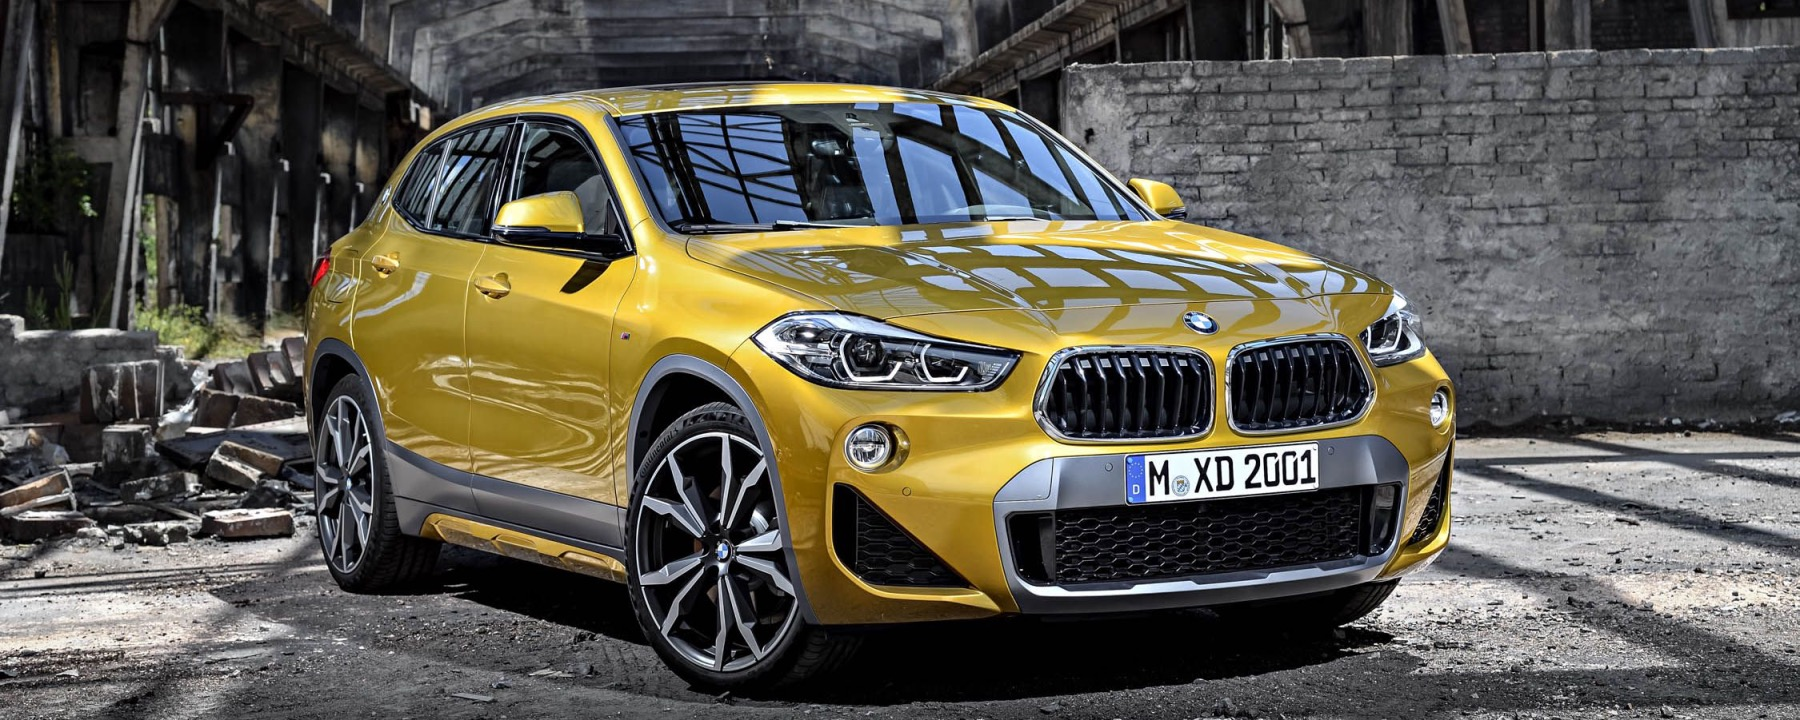 Introducing The First Of Its Kind The Bmw X2 Bmw Of Palm Springs Blog